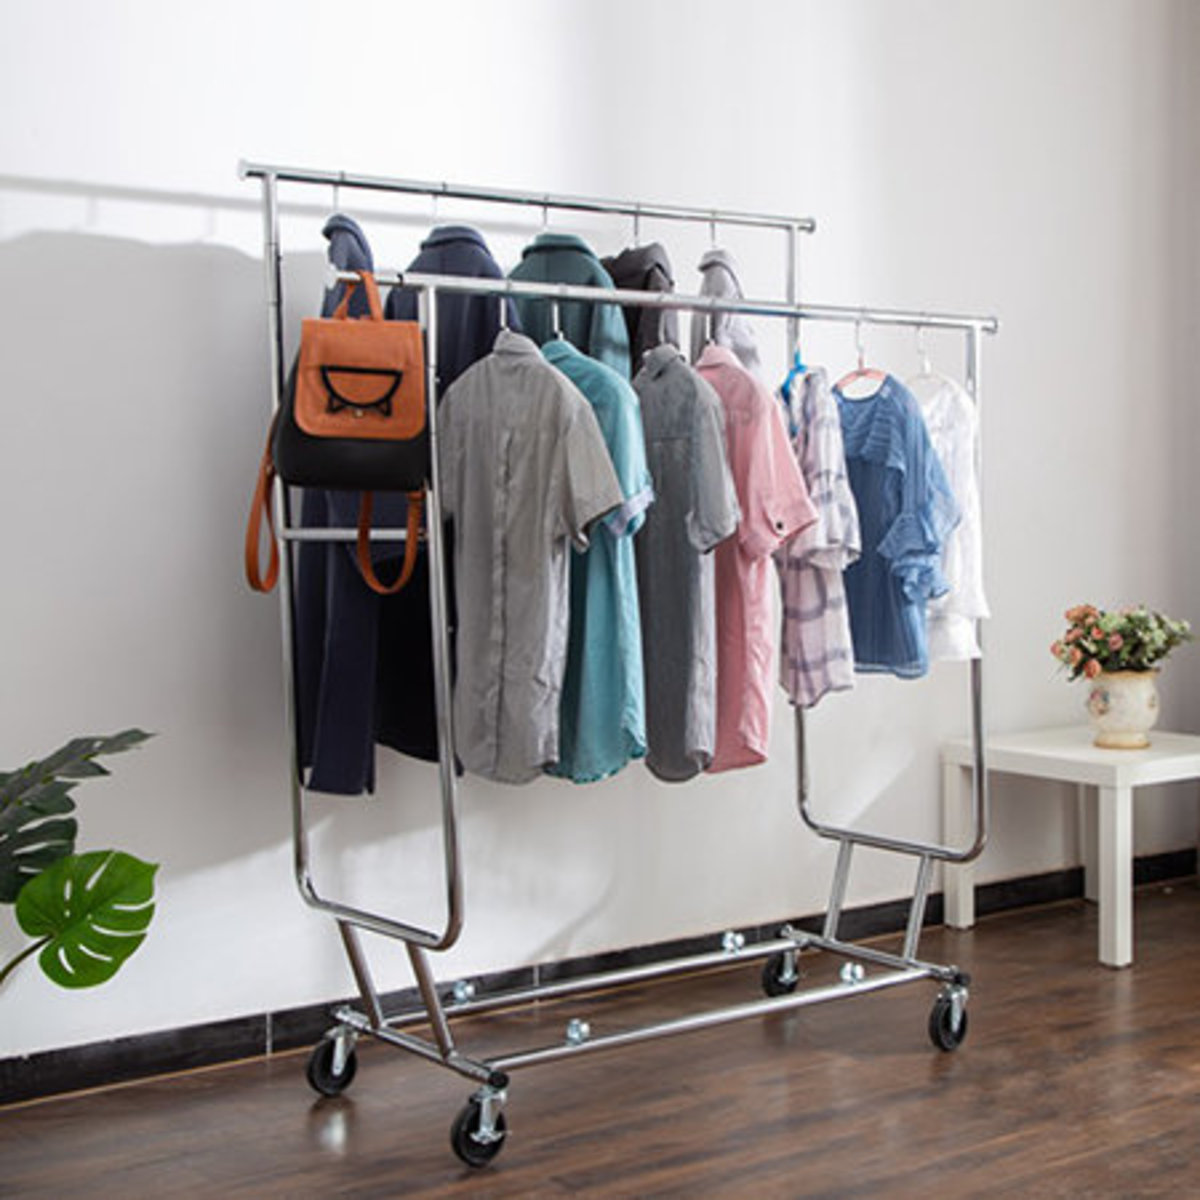 Multifunctional folding and retractable clothes drying rack movable clothes drying rack - D600173